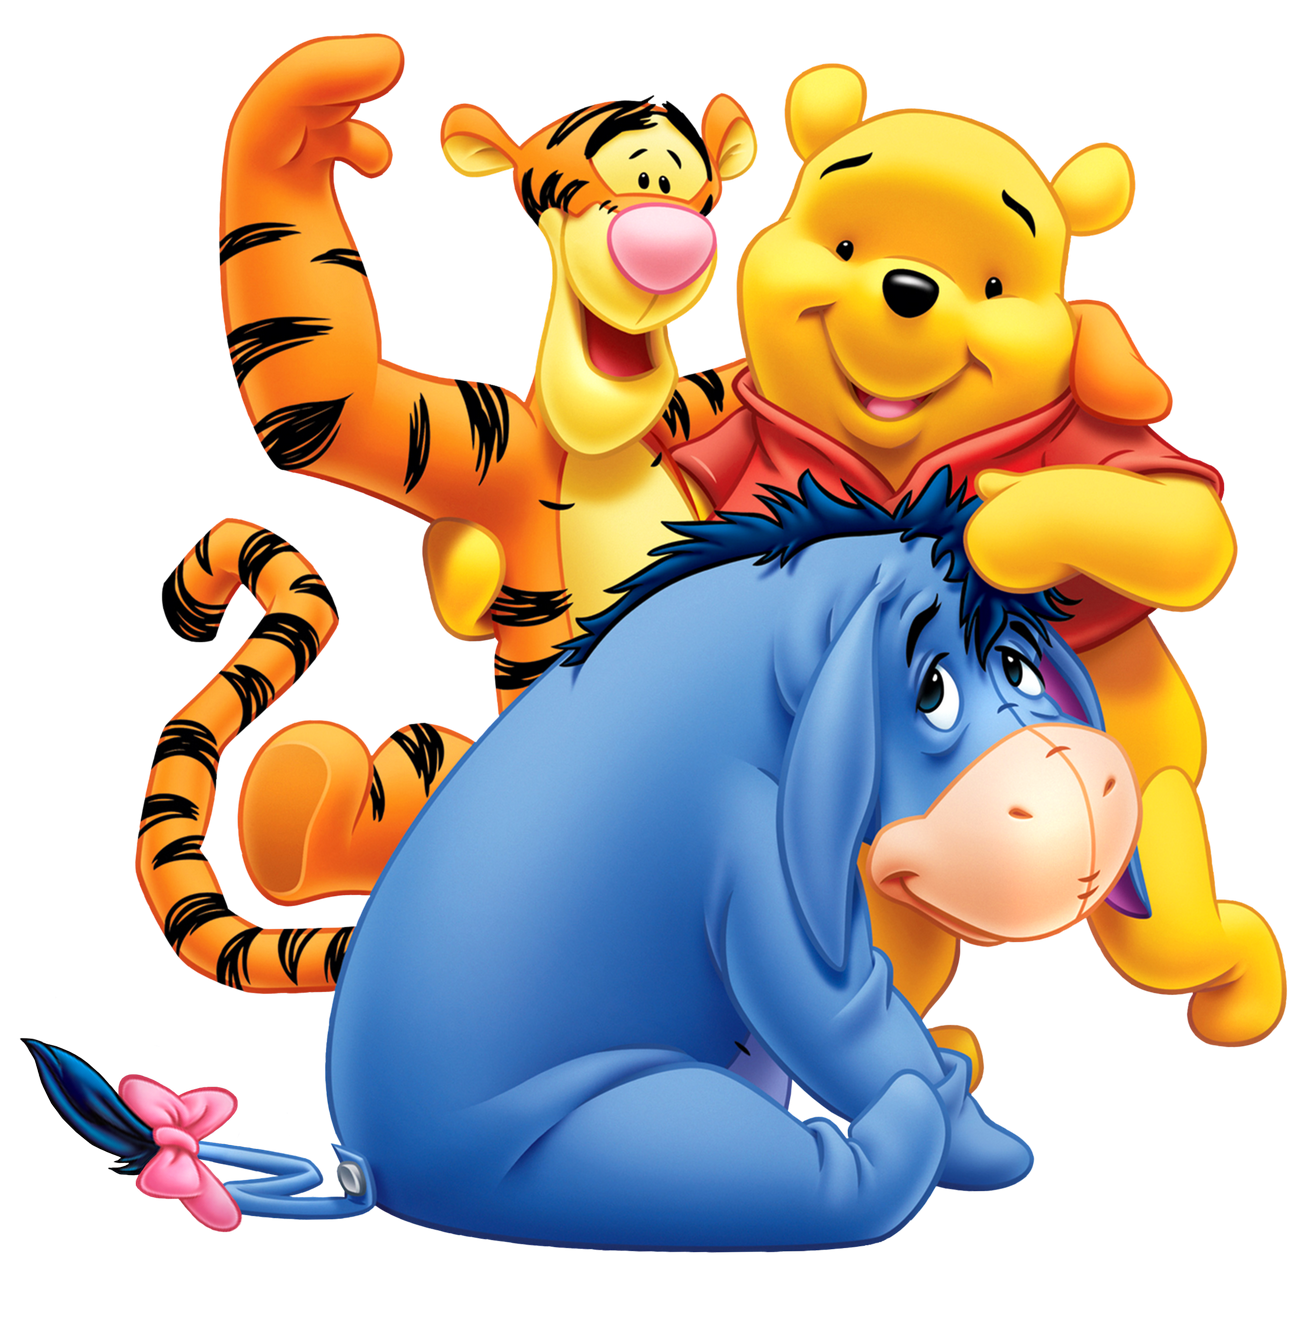 winnie the pooh all png image purepng free transparent cc0 png